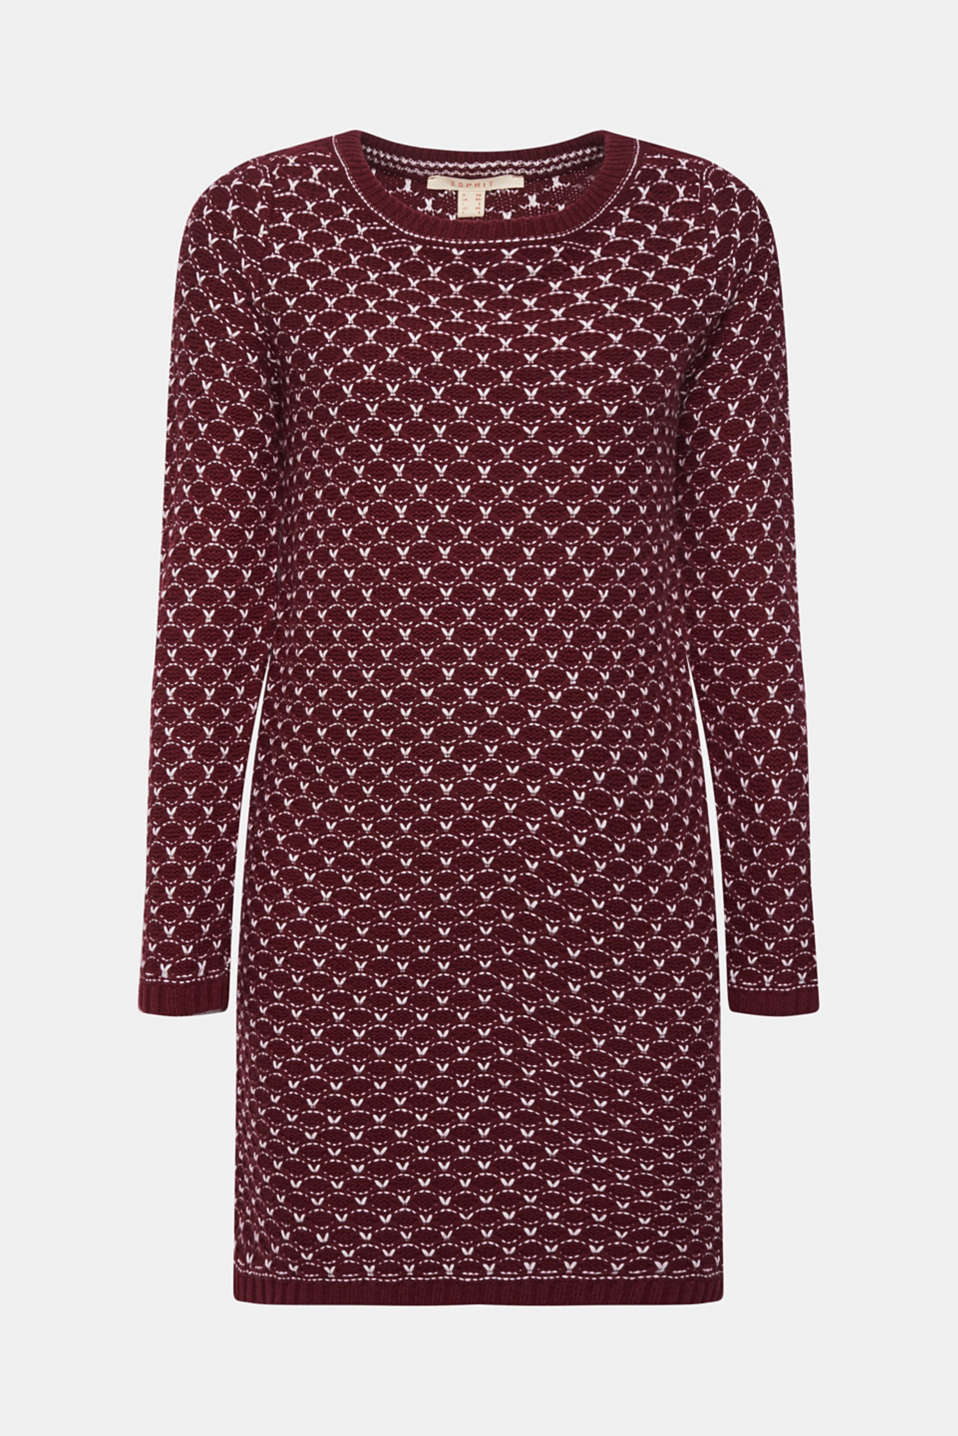 Knitted dress with a honeycomb texture, GARNET RED, detail image number 7